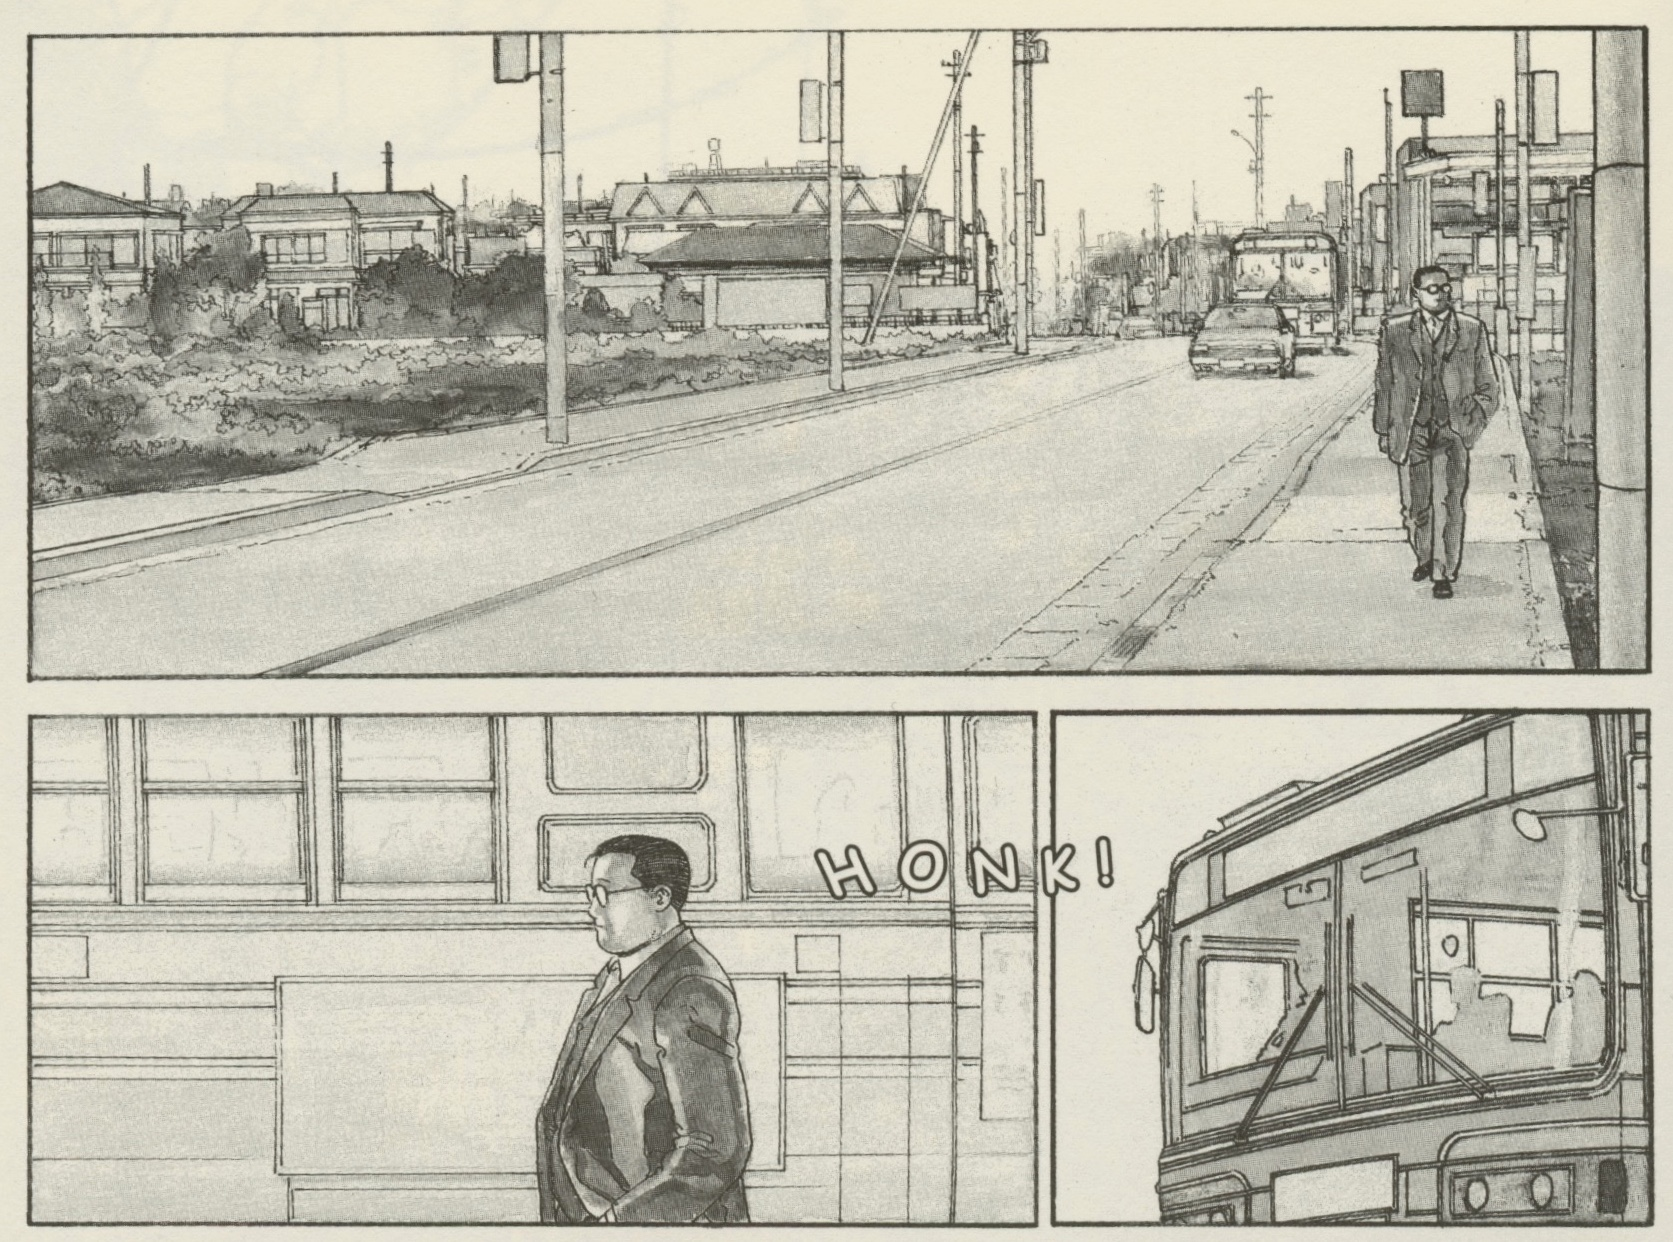 page 24 - panel 1 and 2